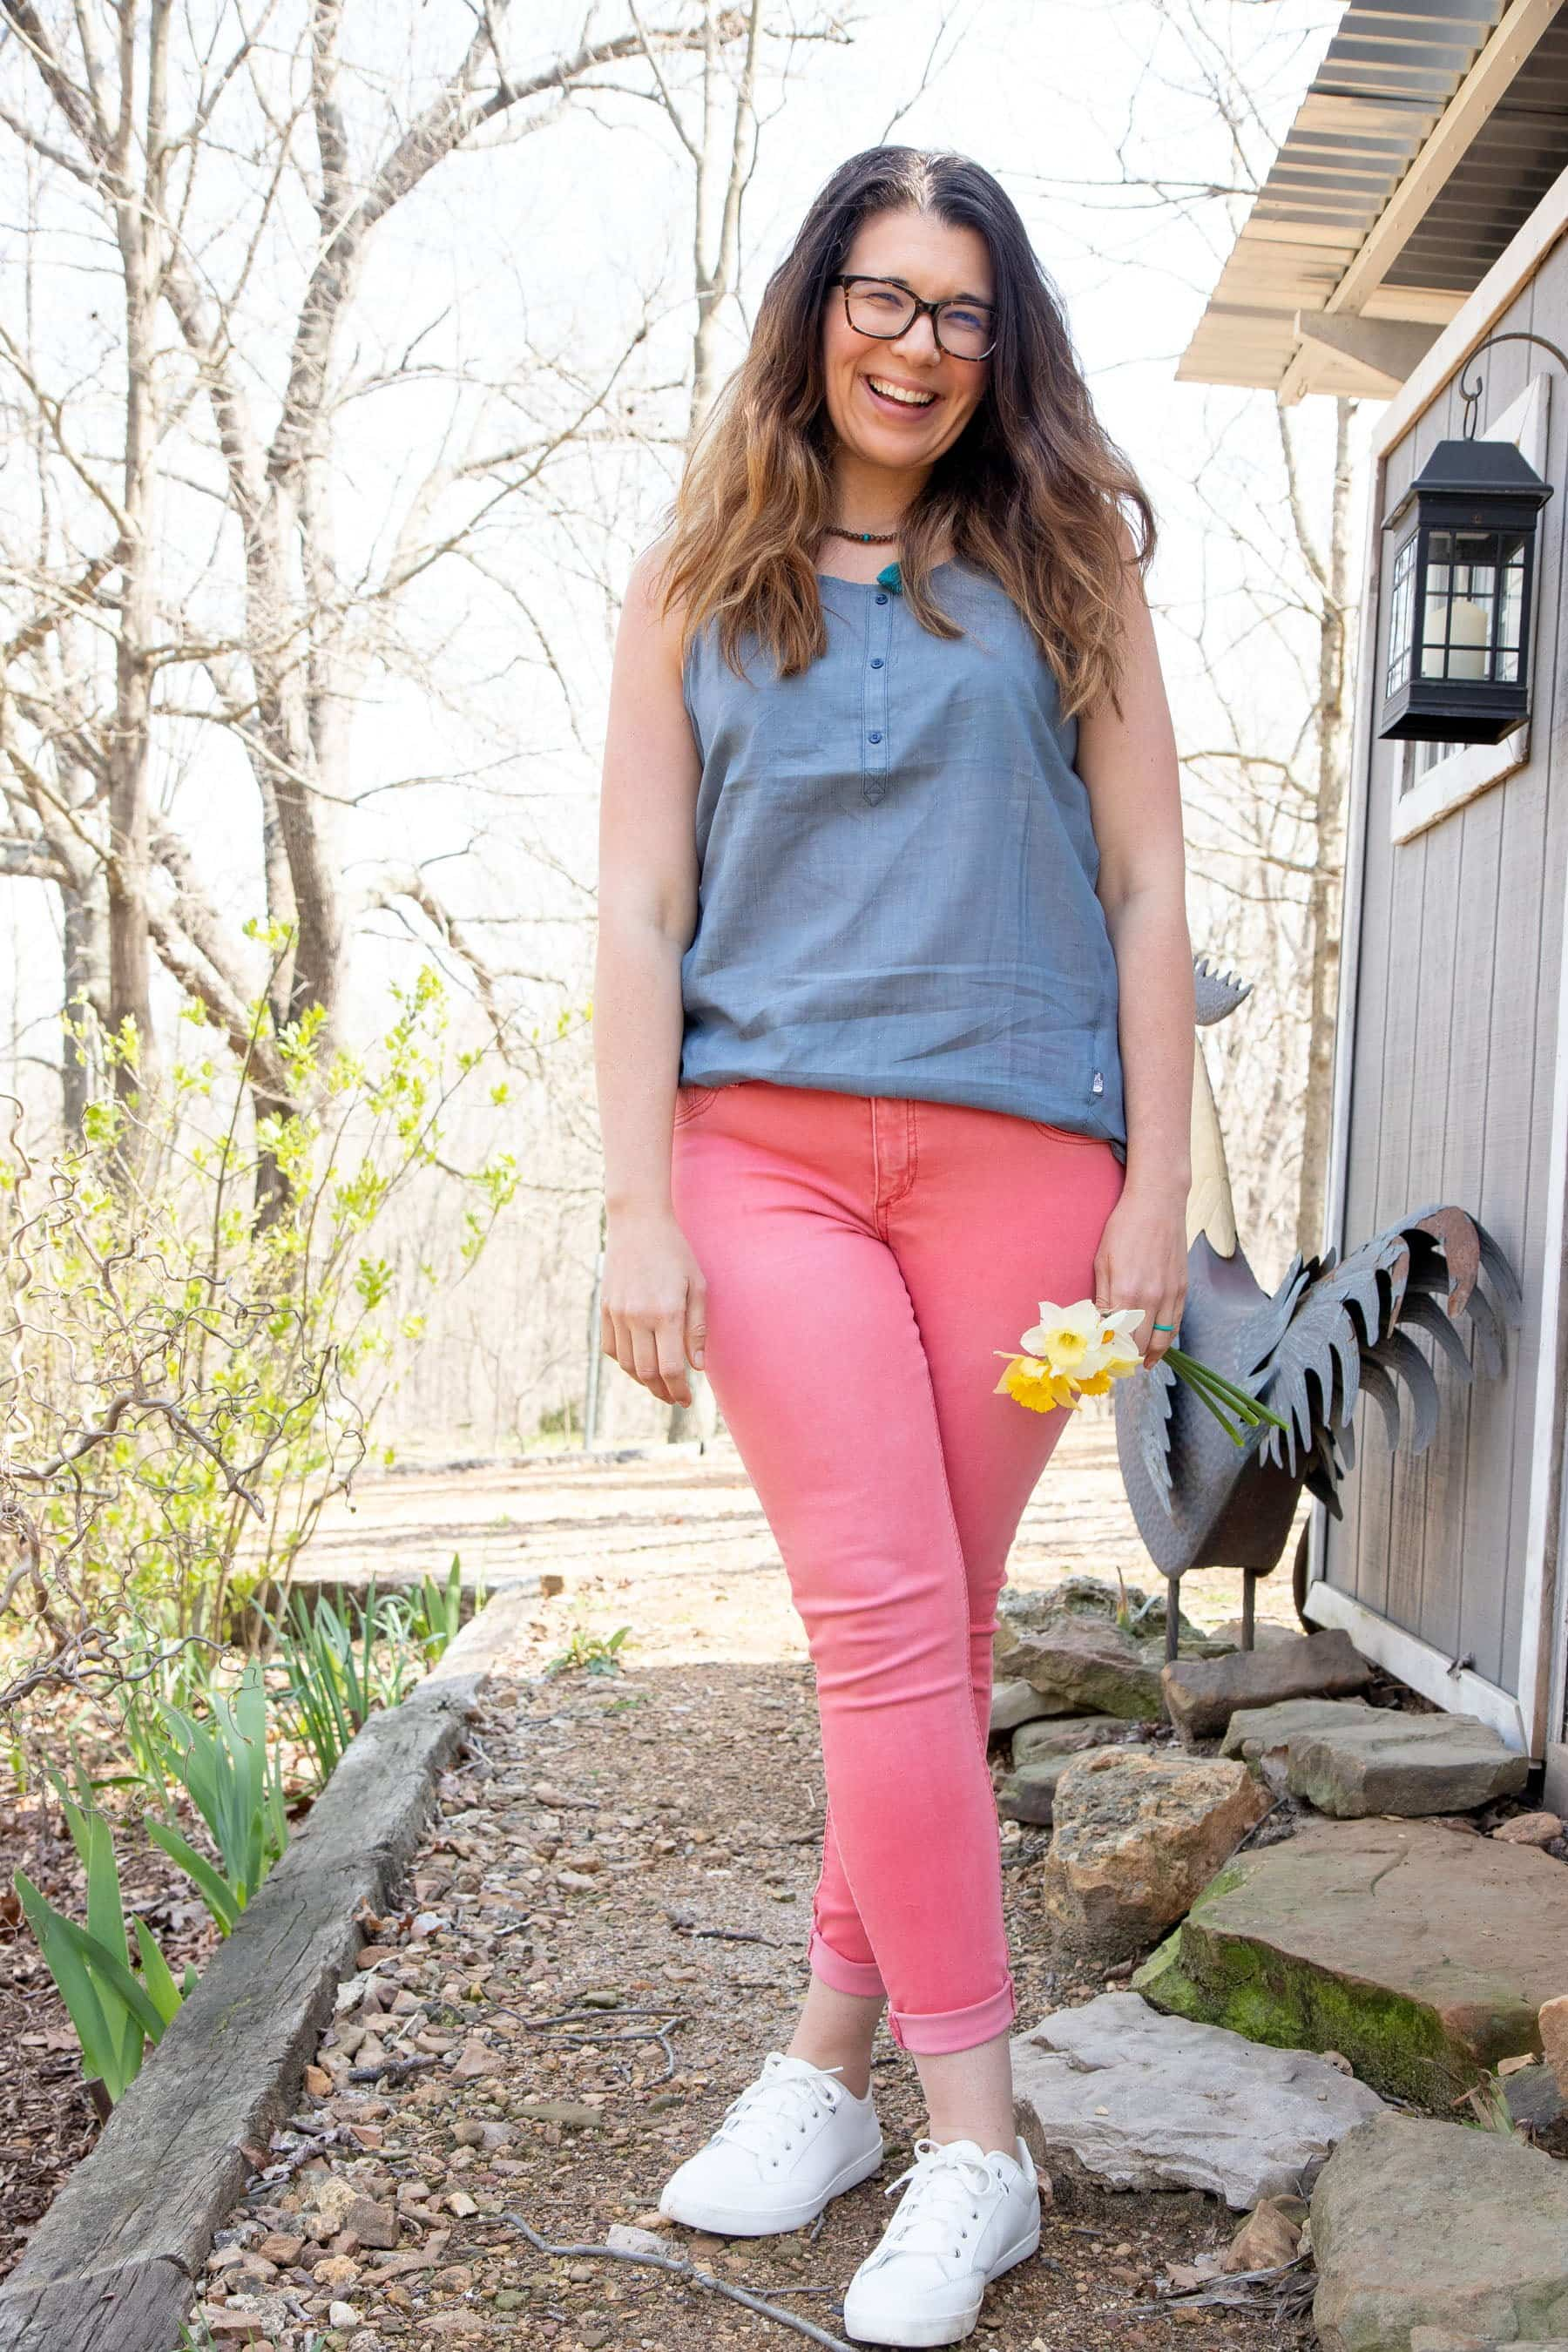 Full body shot of a woman in a blue shirt and pink pants, holding a bunch of daffodils